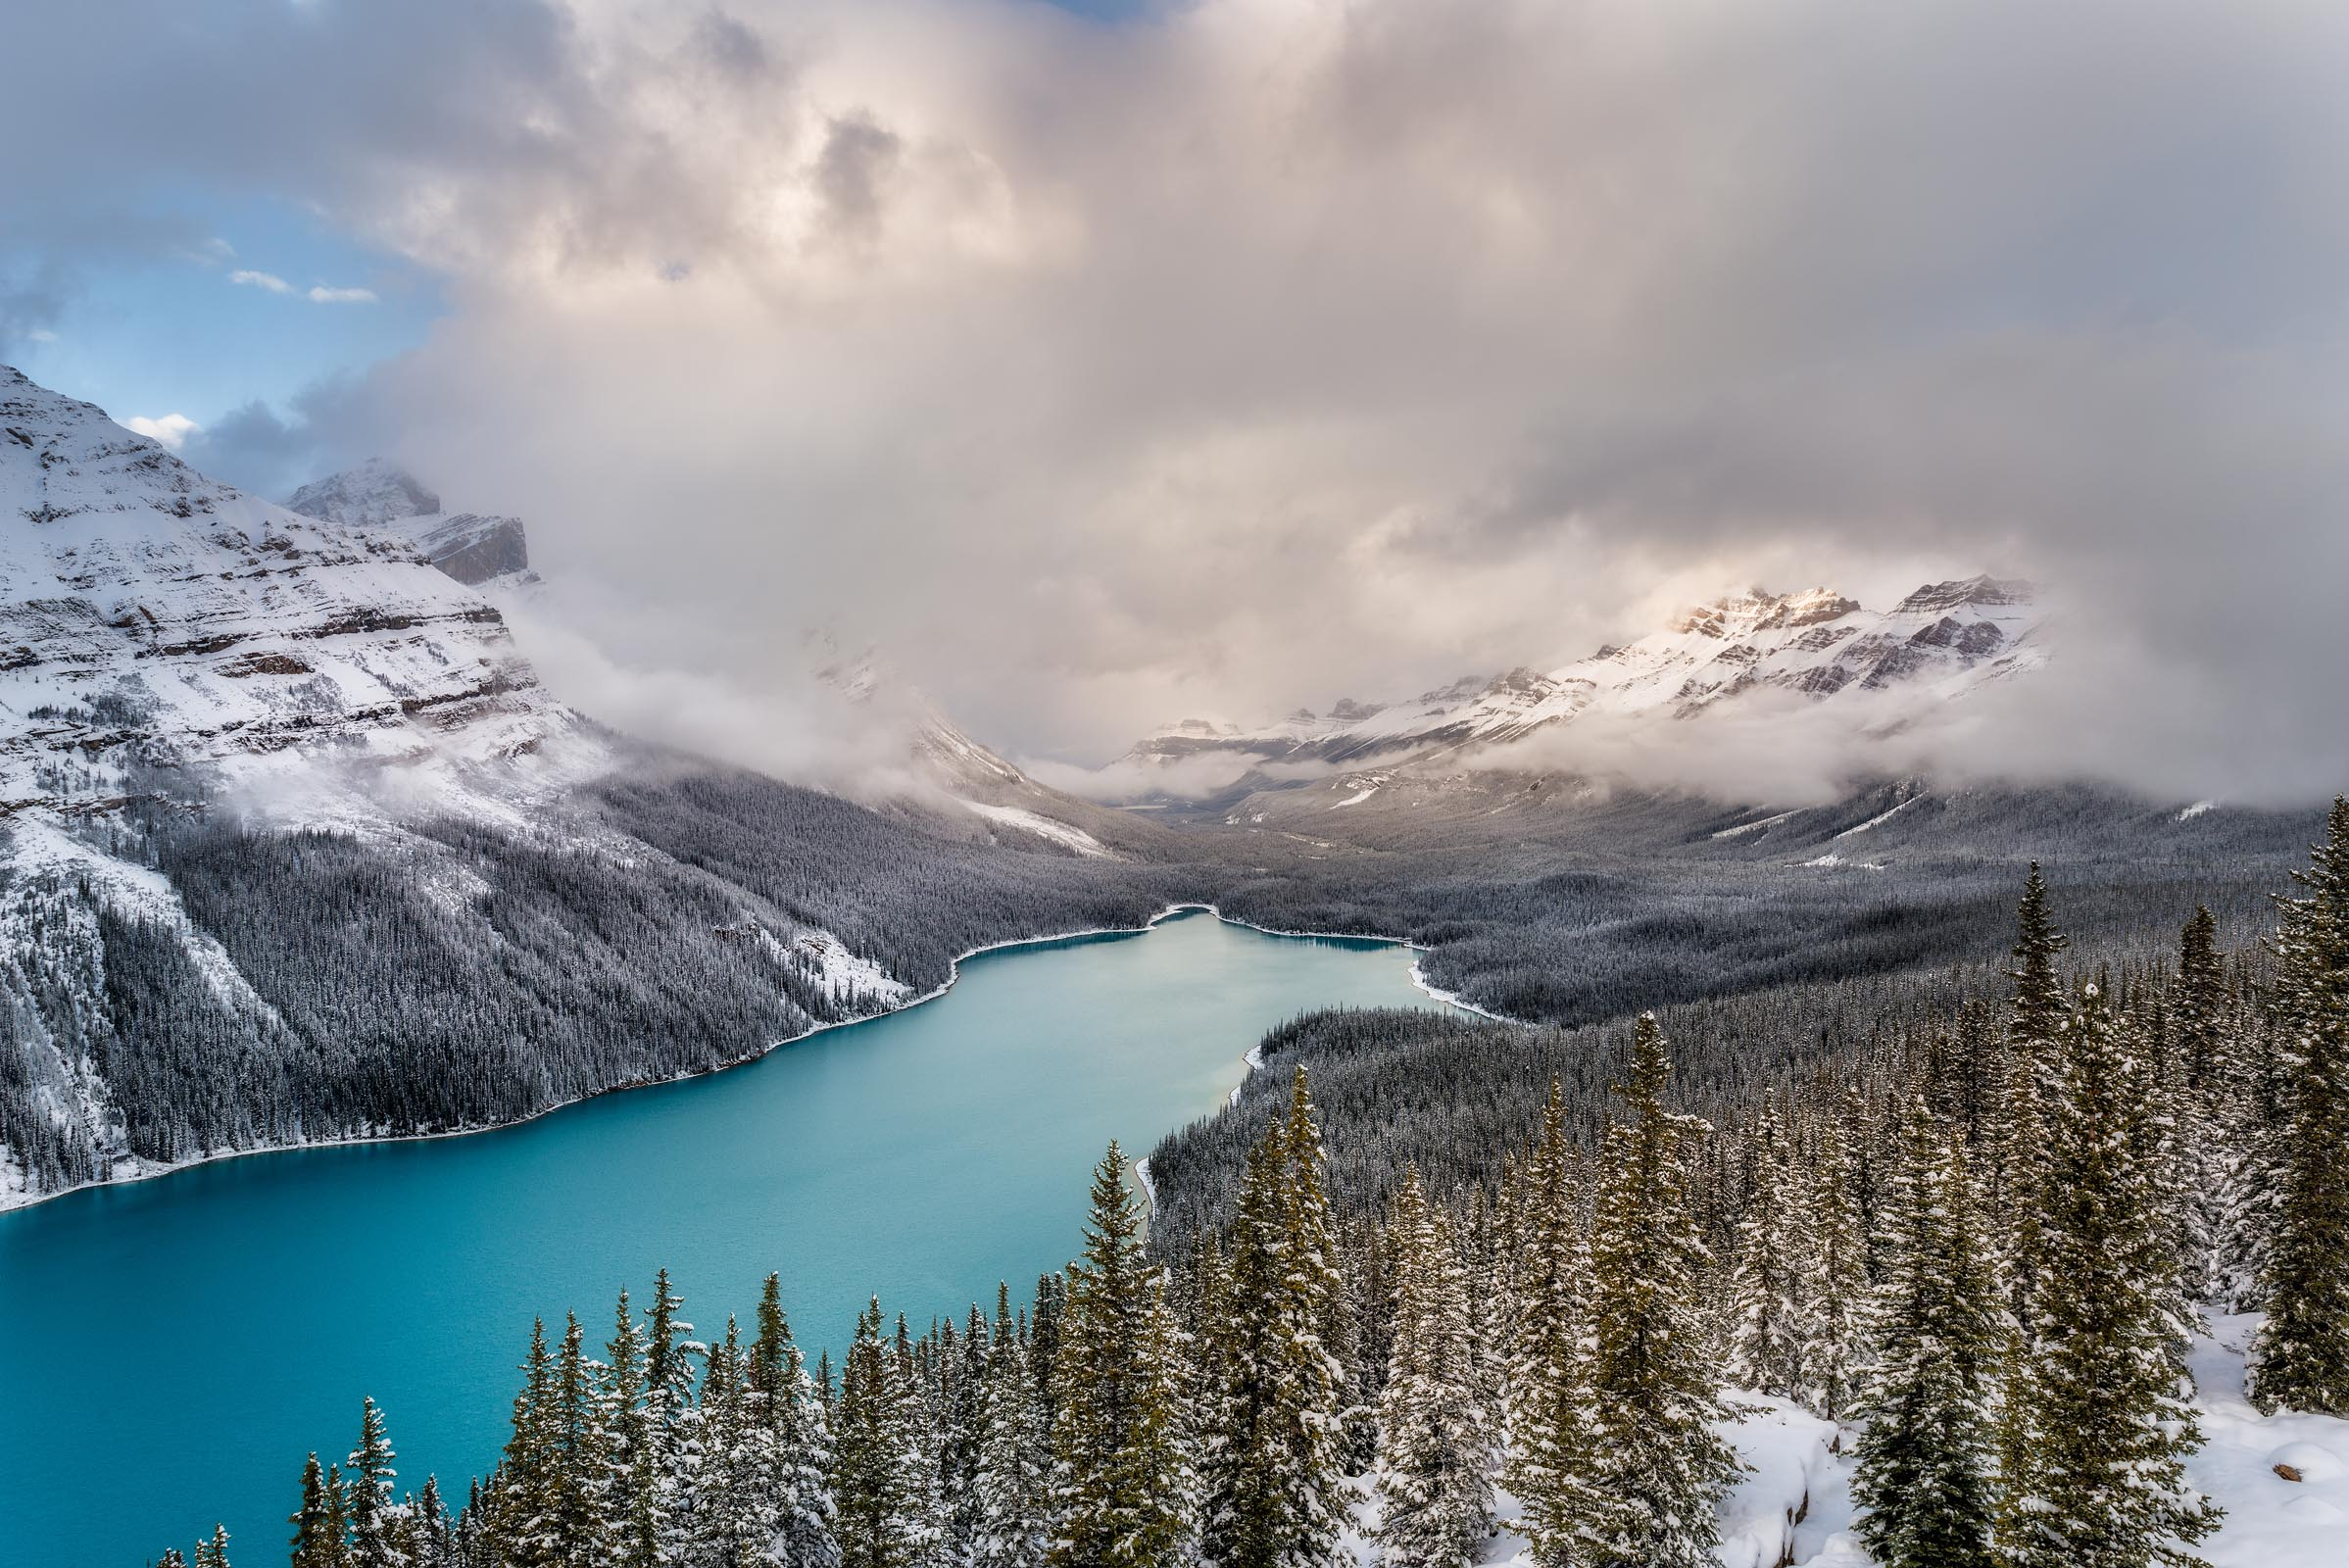 Photograph of Peyto Lake in Banff, Canada by Brent Goldman Photography